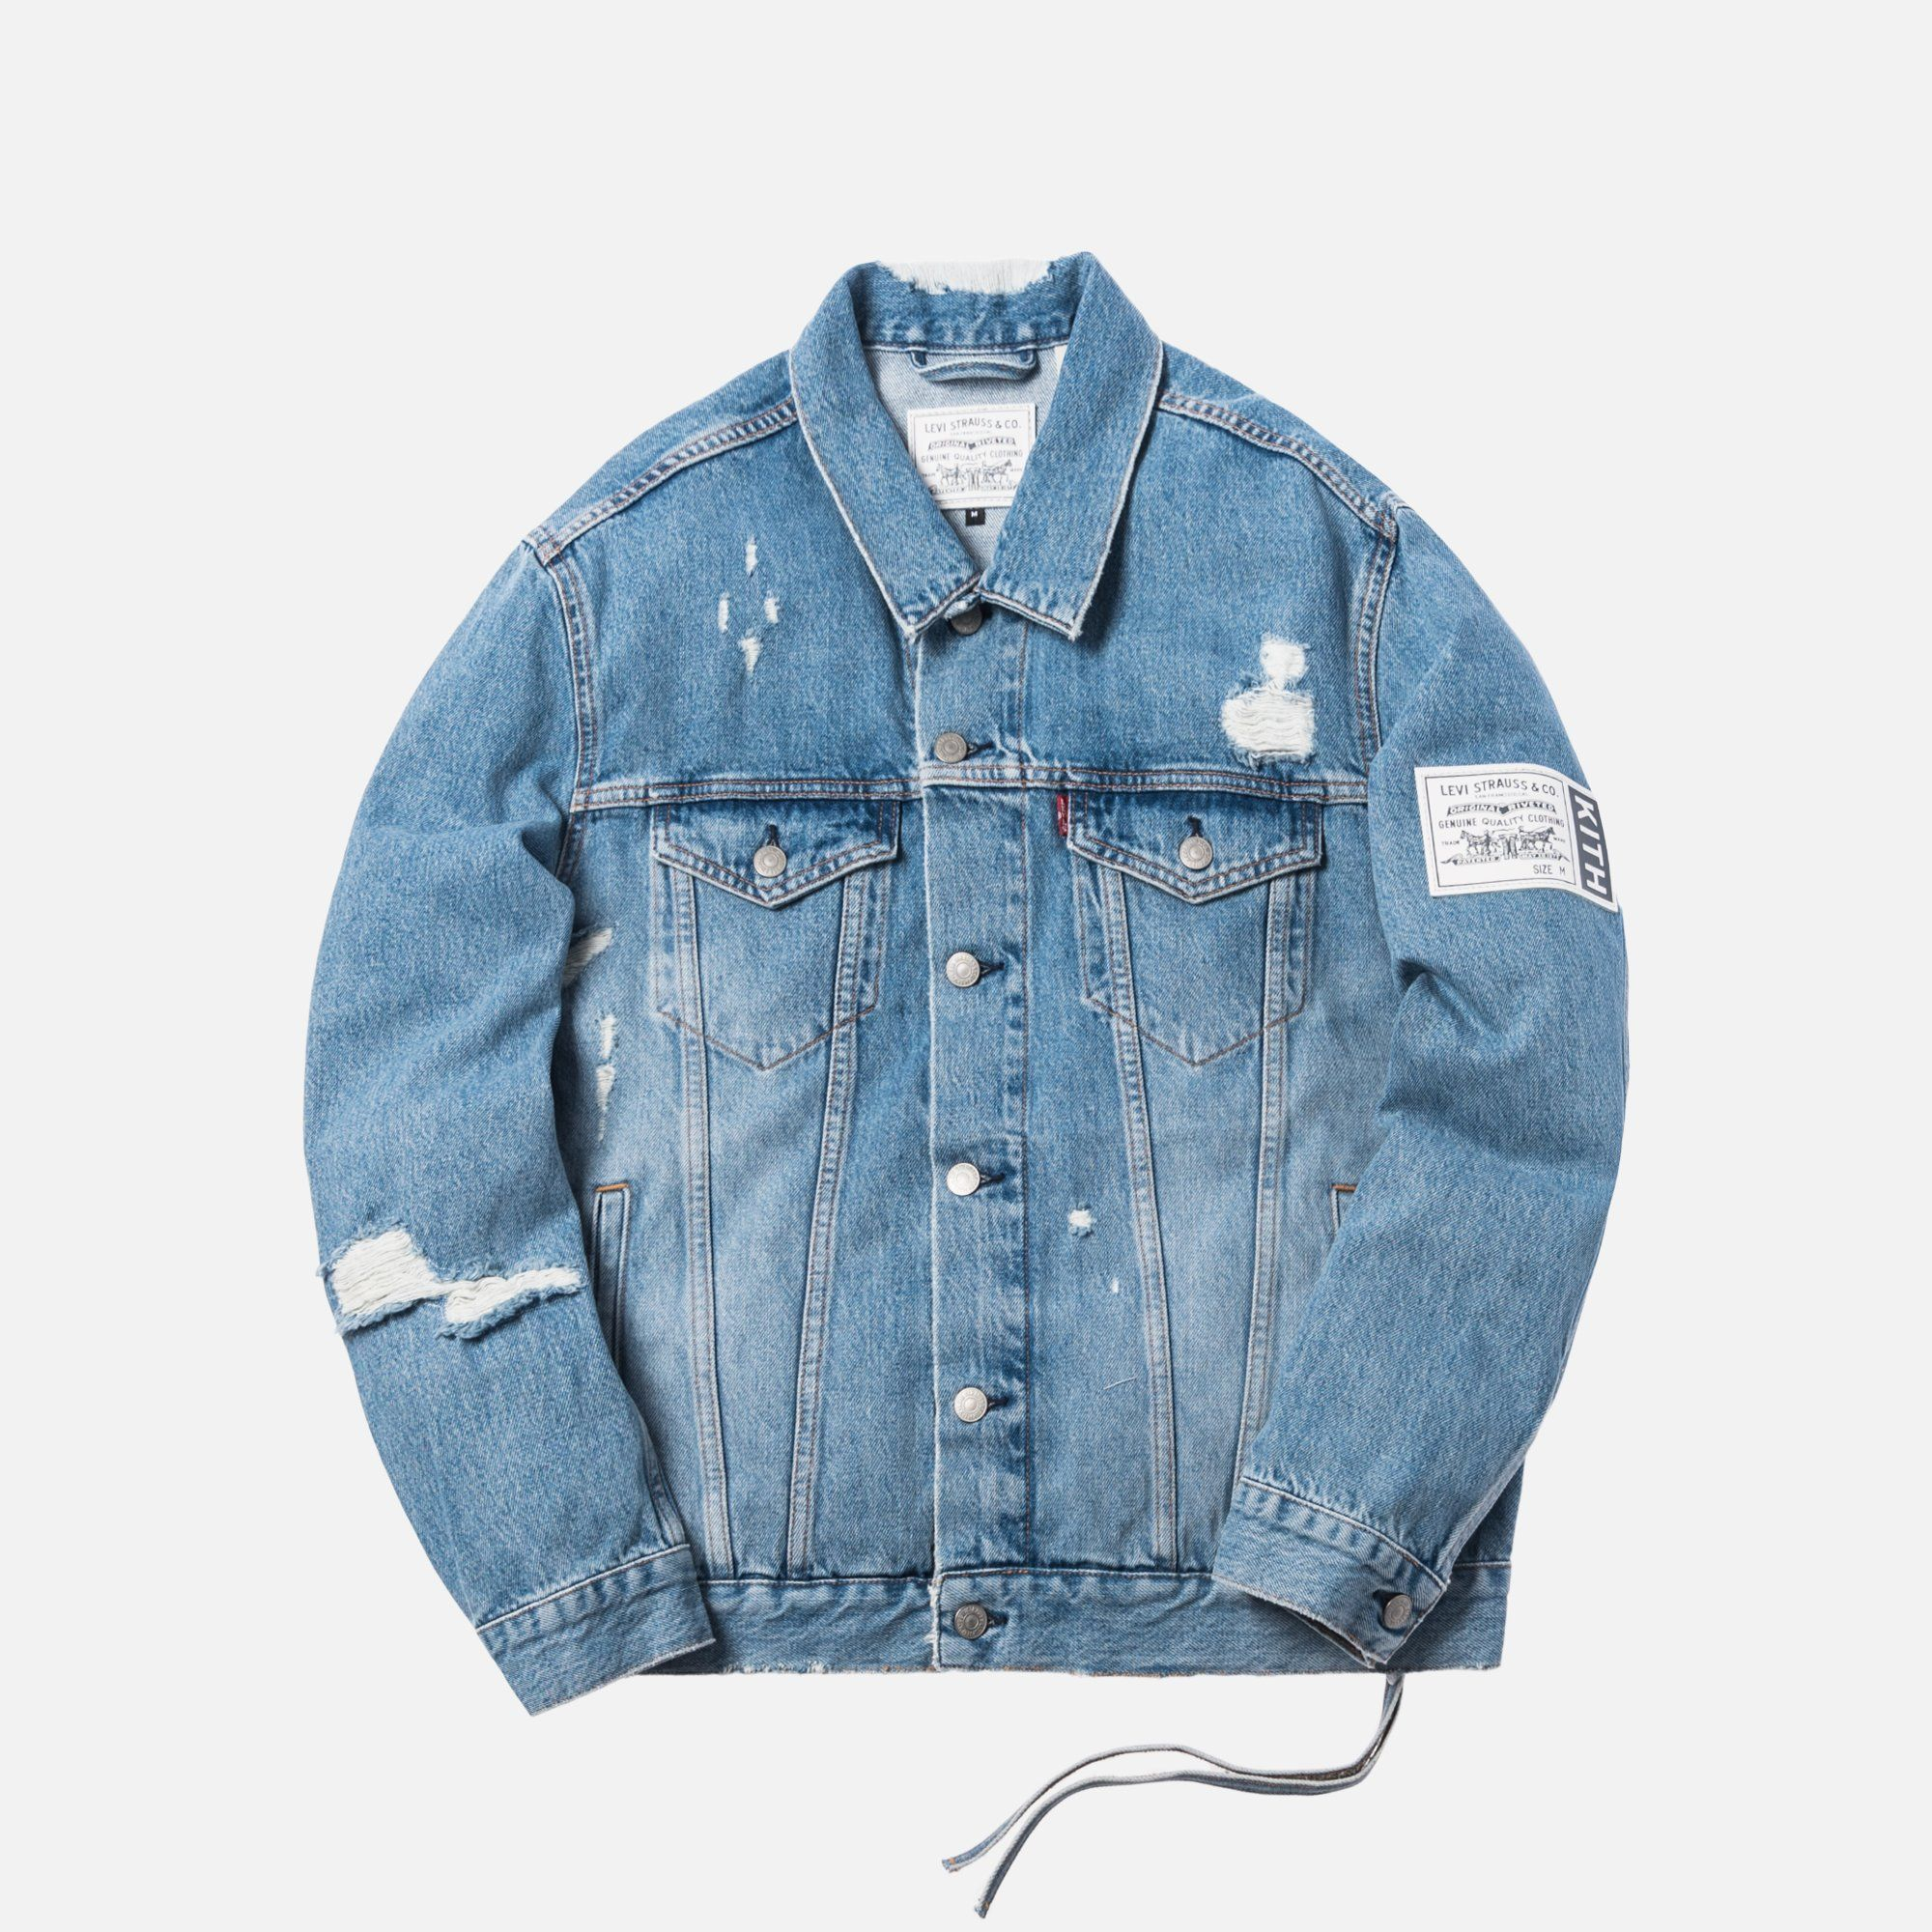 e788901d x Levi's Thrashed Trucker Jacket - Light Blue - XXS in 2019 | Agnies ...